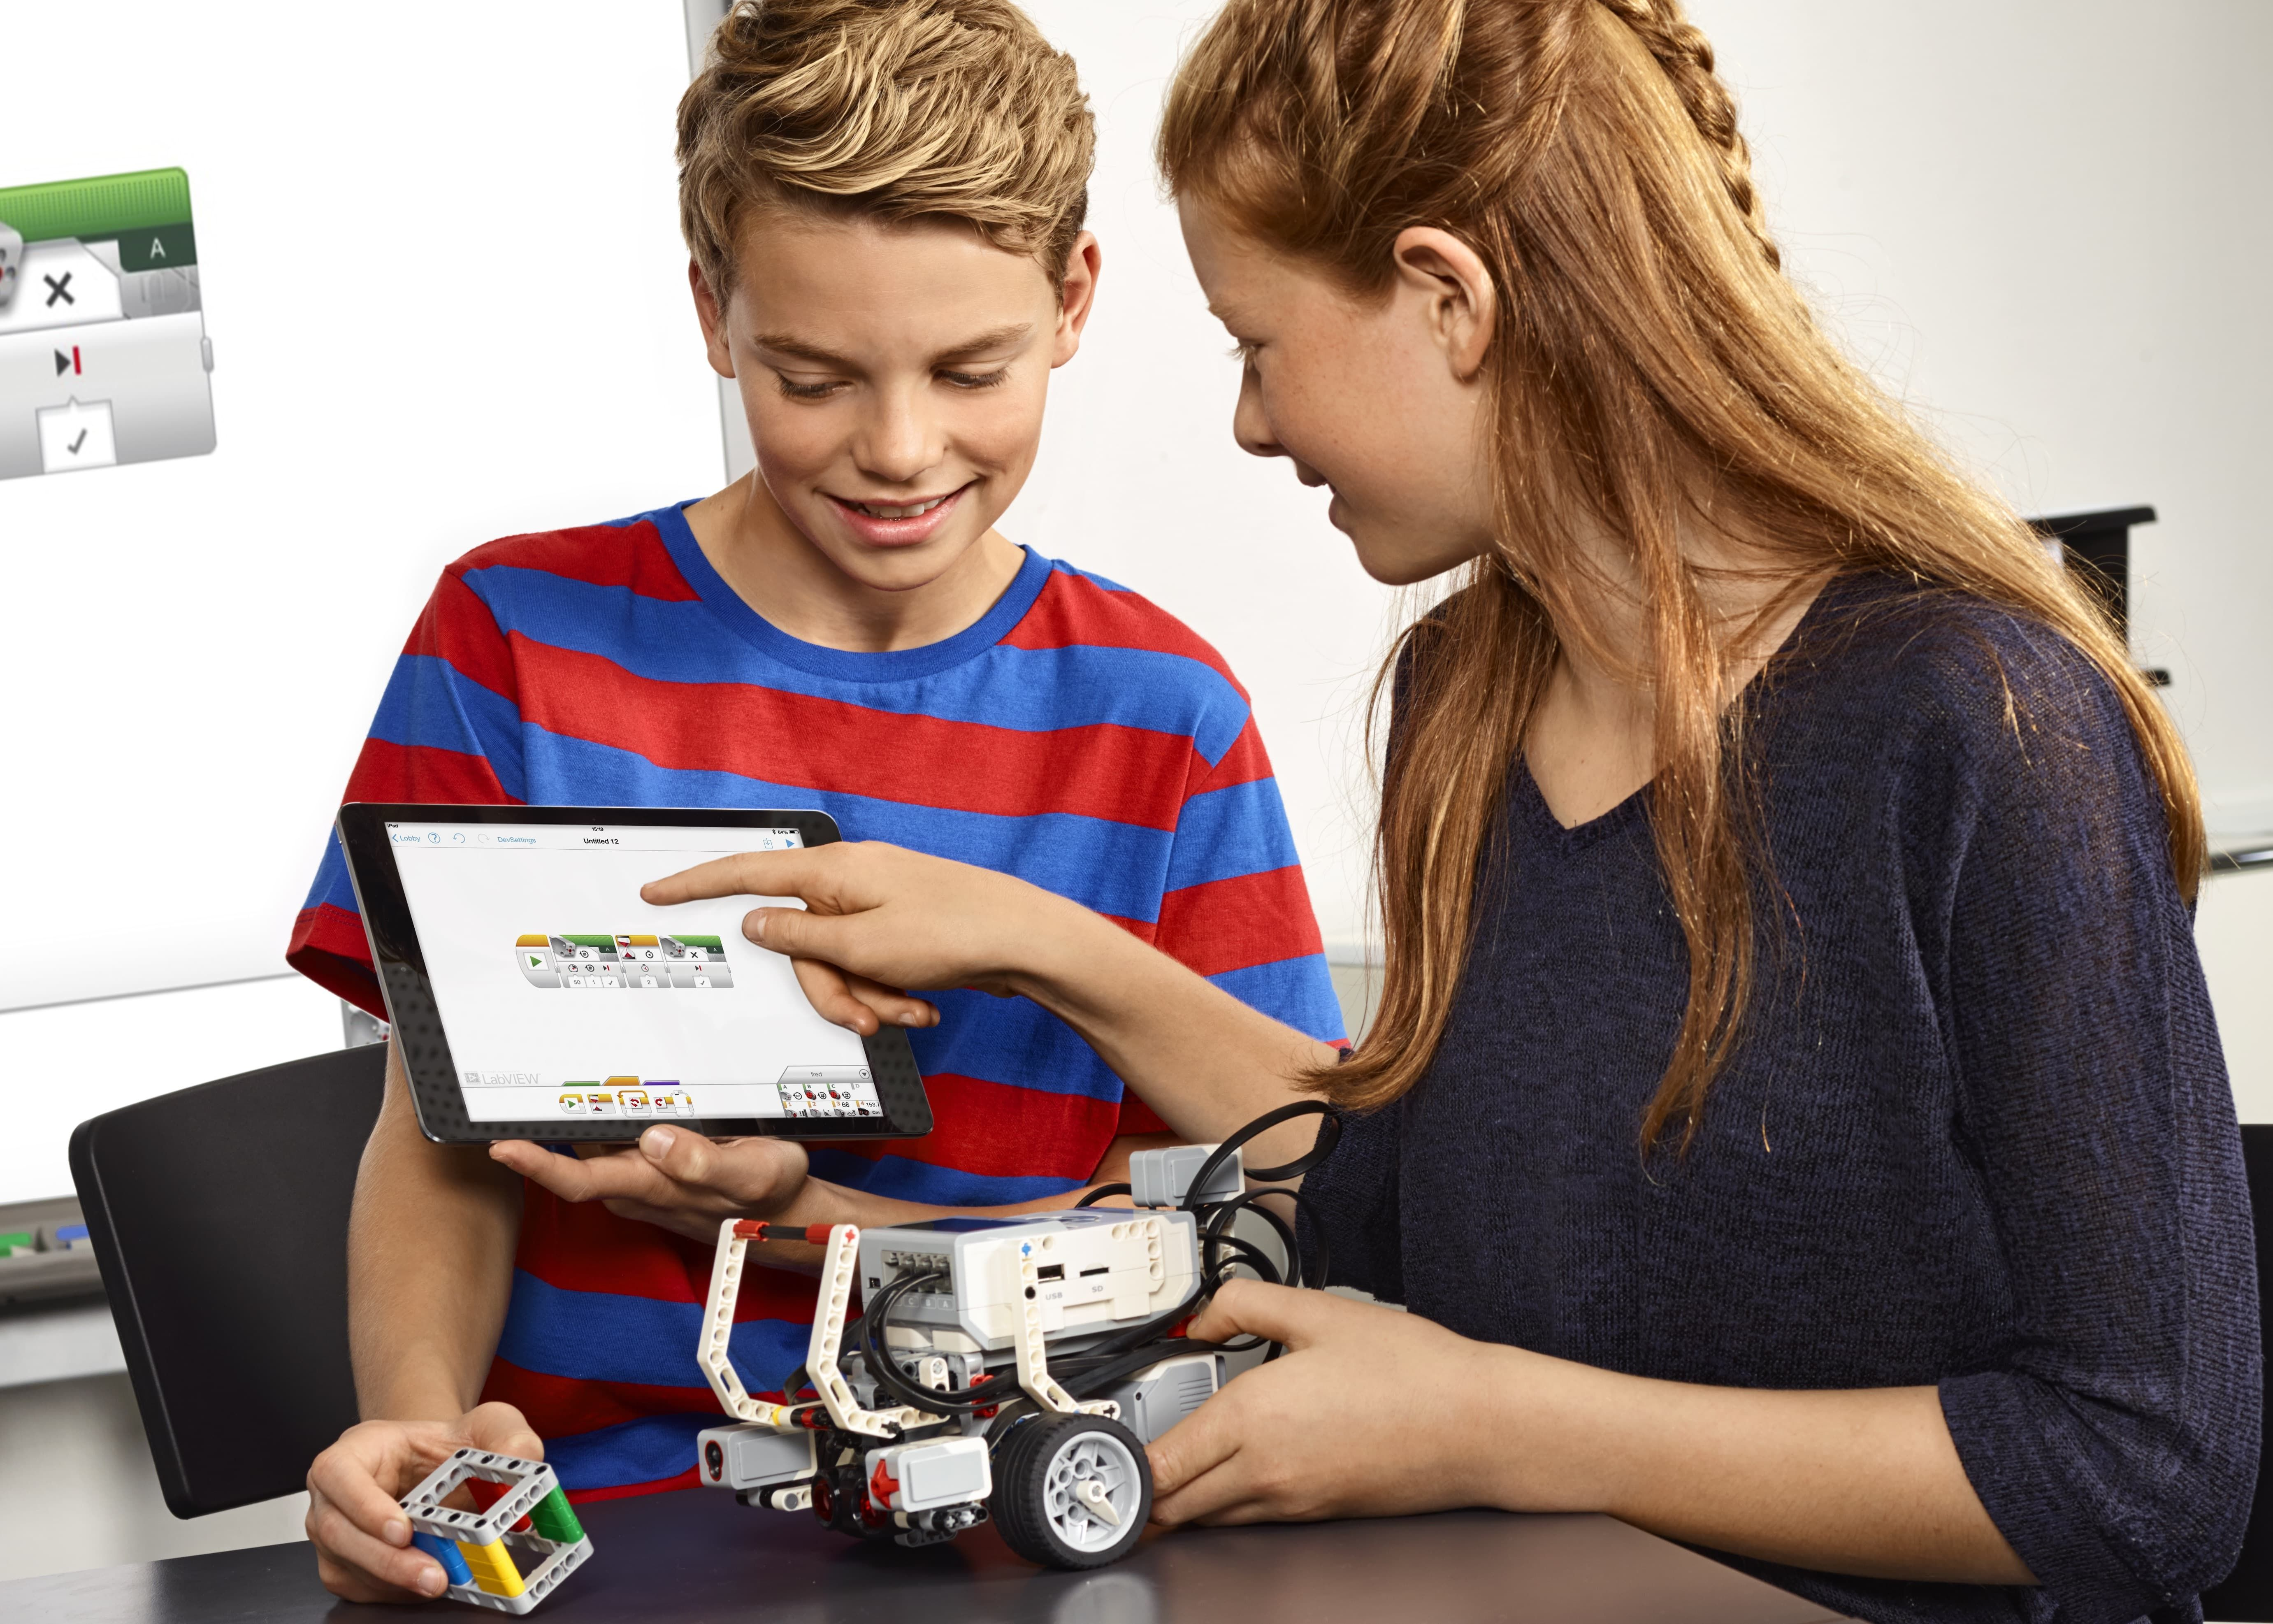 LEGO® Mindstorms EV3 education